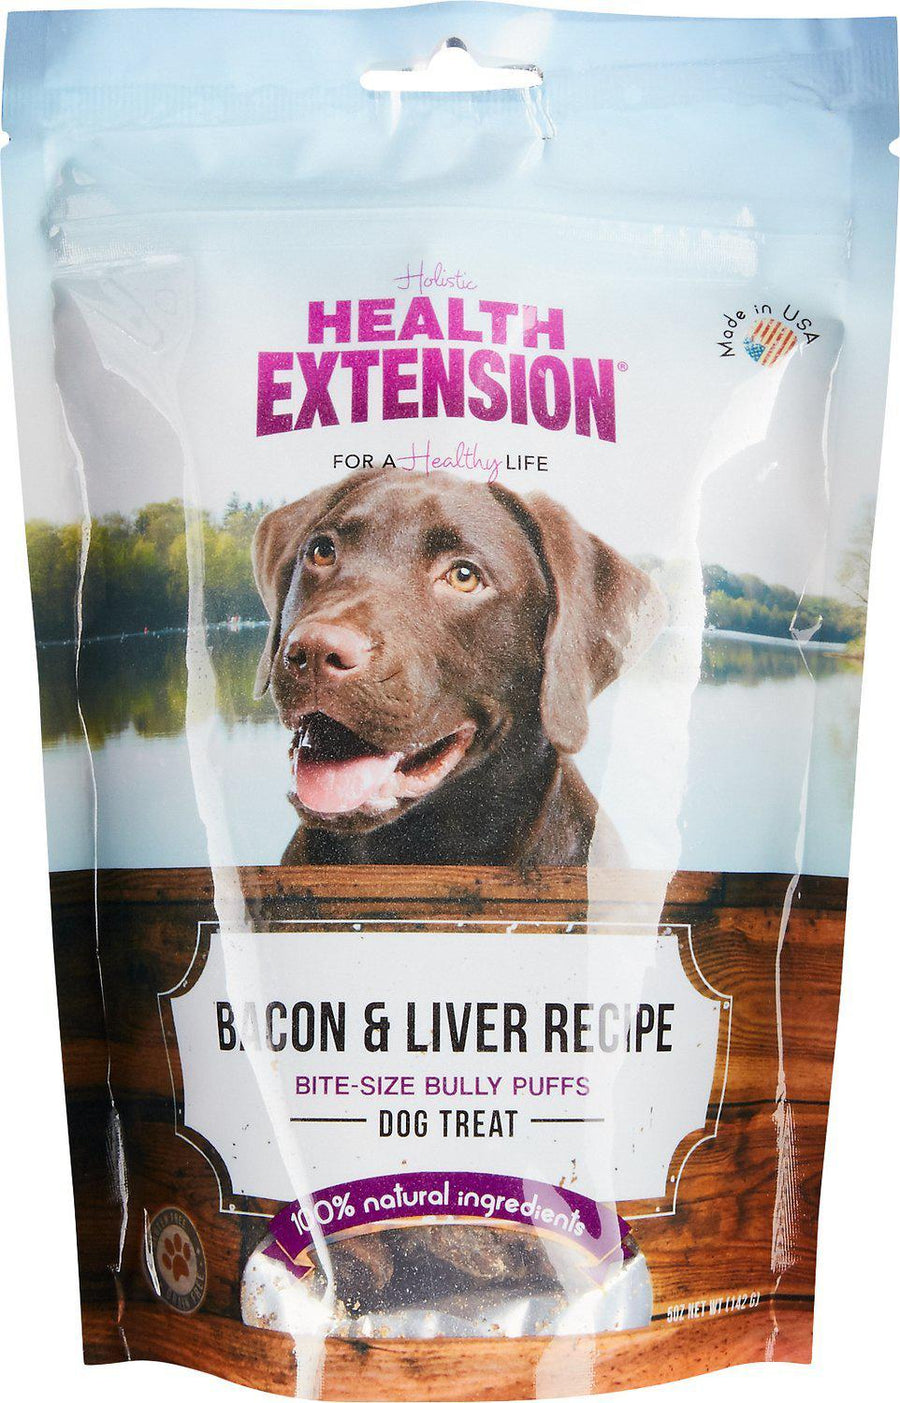 Health Extension Holistic Bacon & Liver Bully Puffs Grain-Free Dog Treats-Le Pup Pet Supplies and Grooming